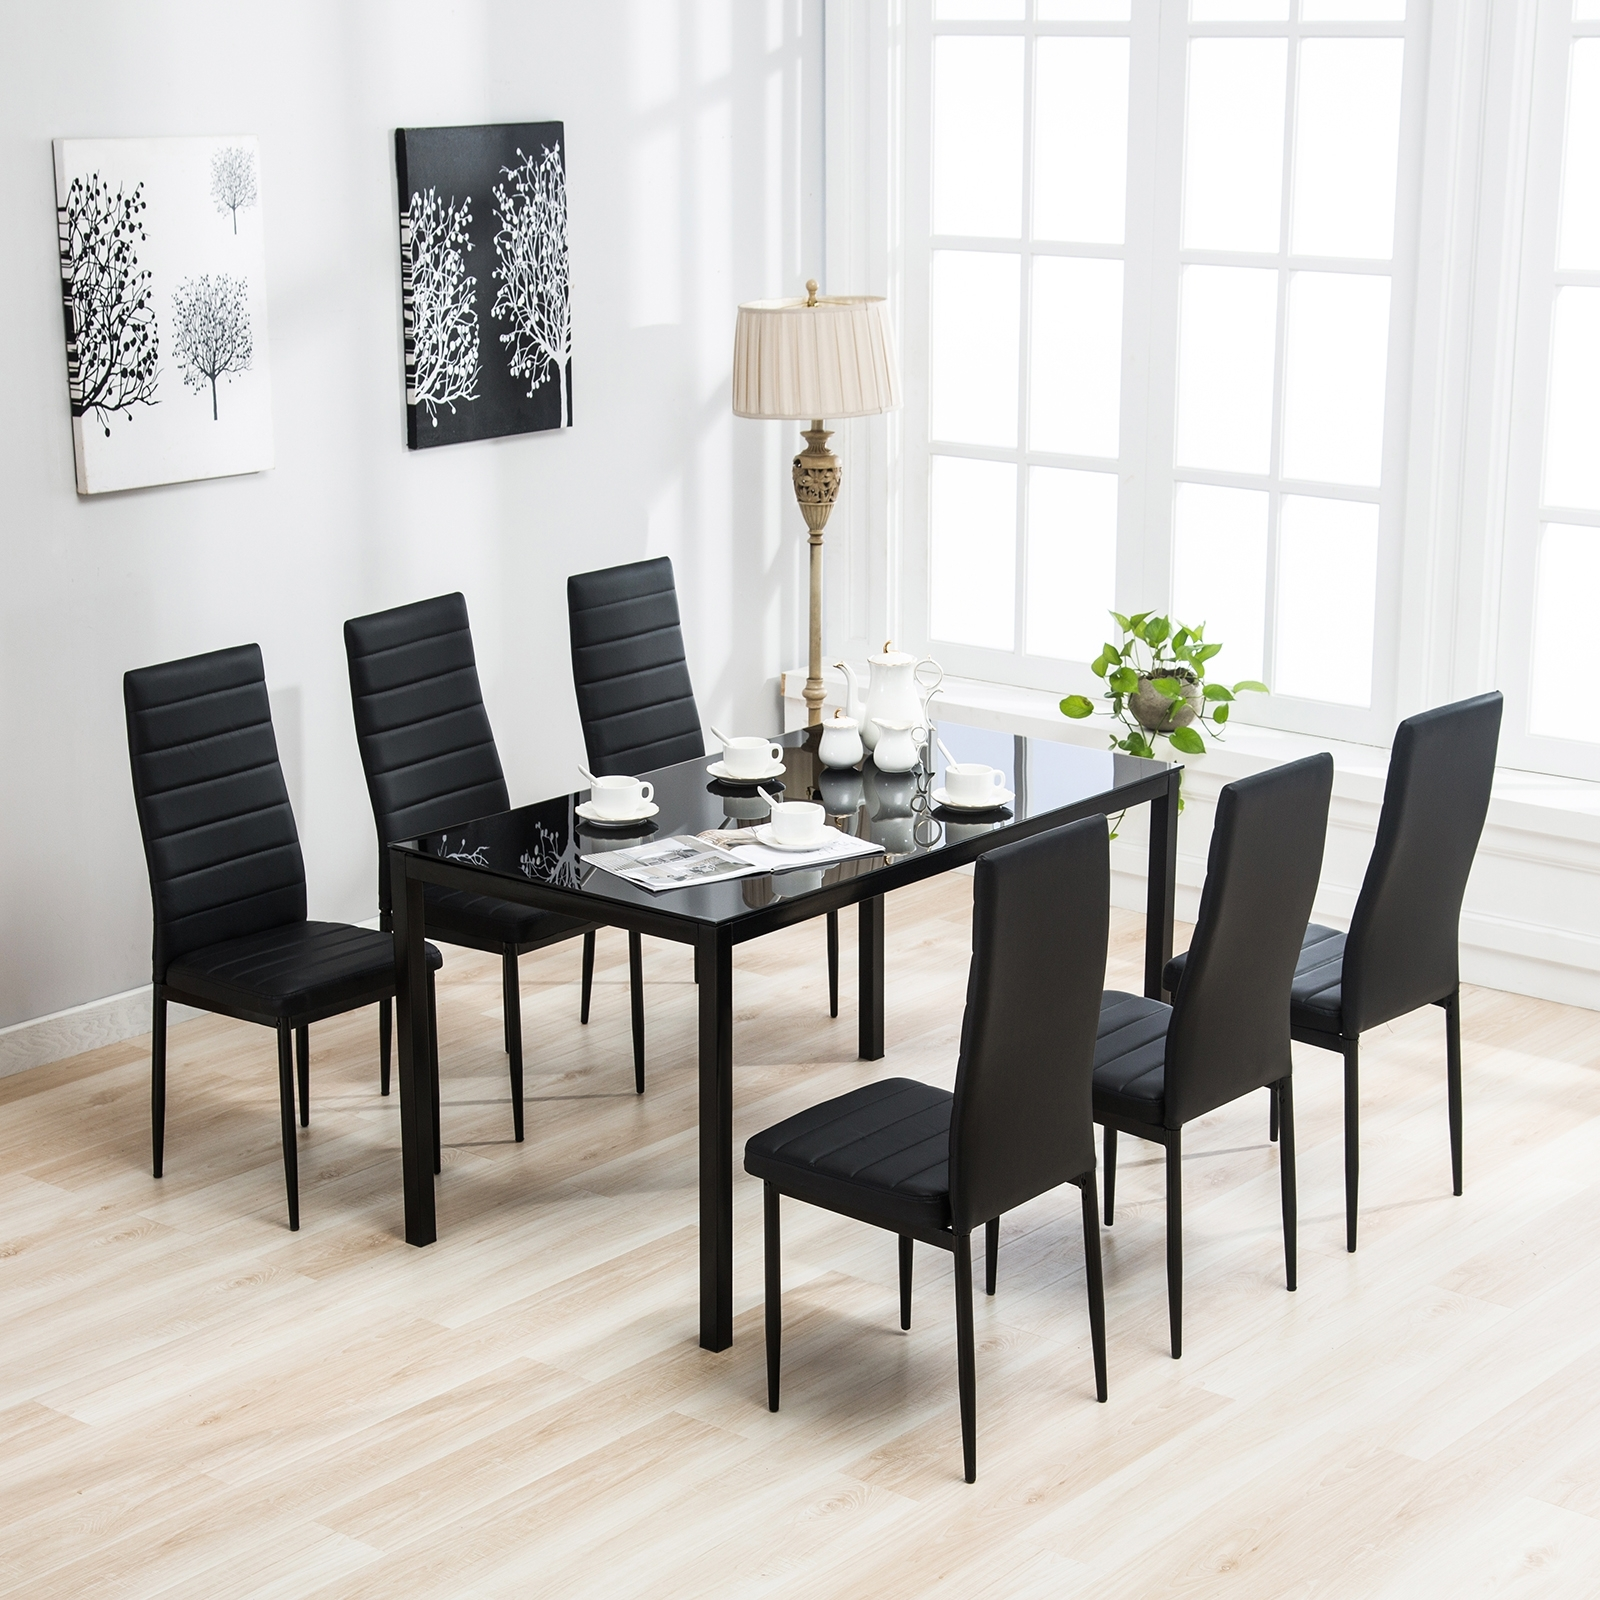 Black Glass Dining Tables 6 Chairs Pertaining To Trendy Dakavia 7 Piece Dining Table Set 6 Chairs Black Glass Metal Kitchen (View 17 of 25)